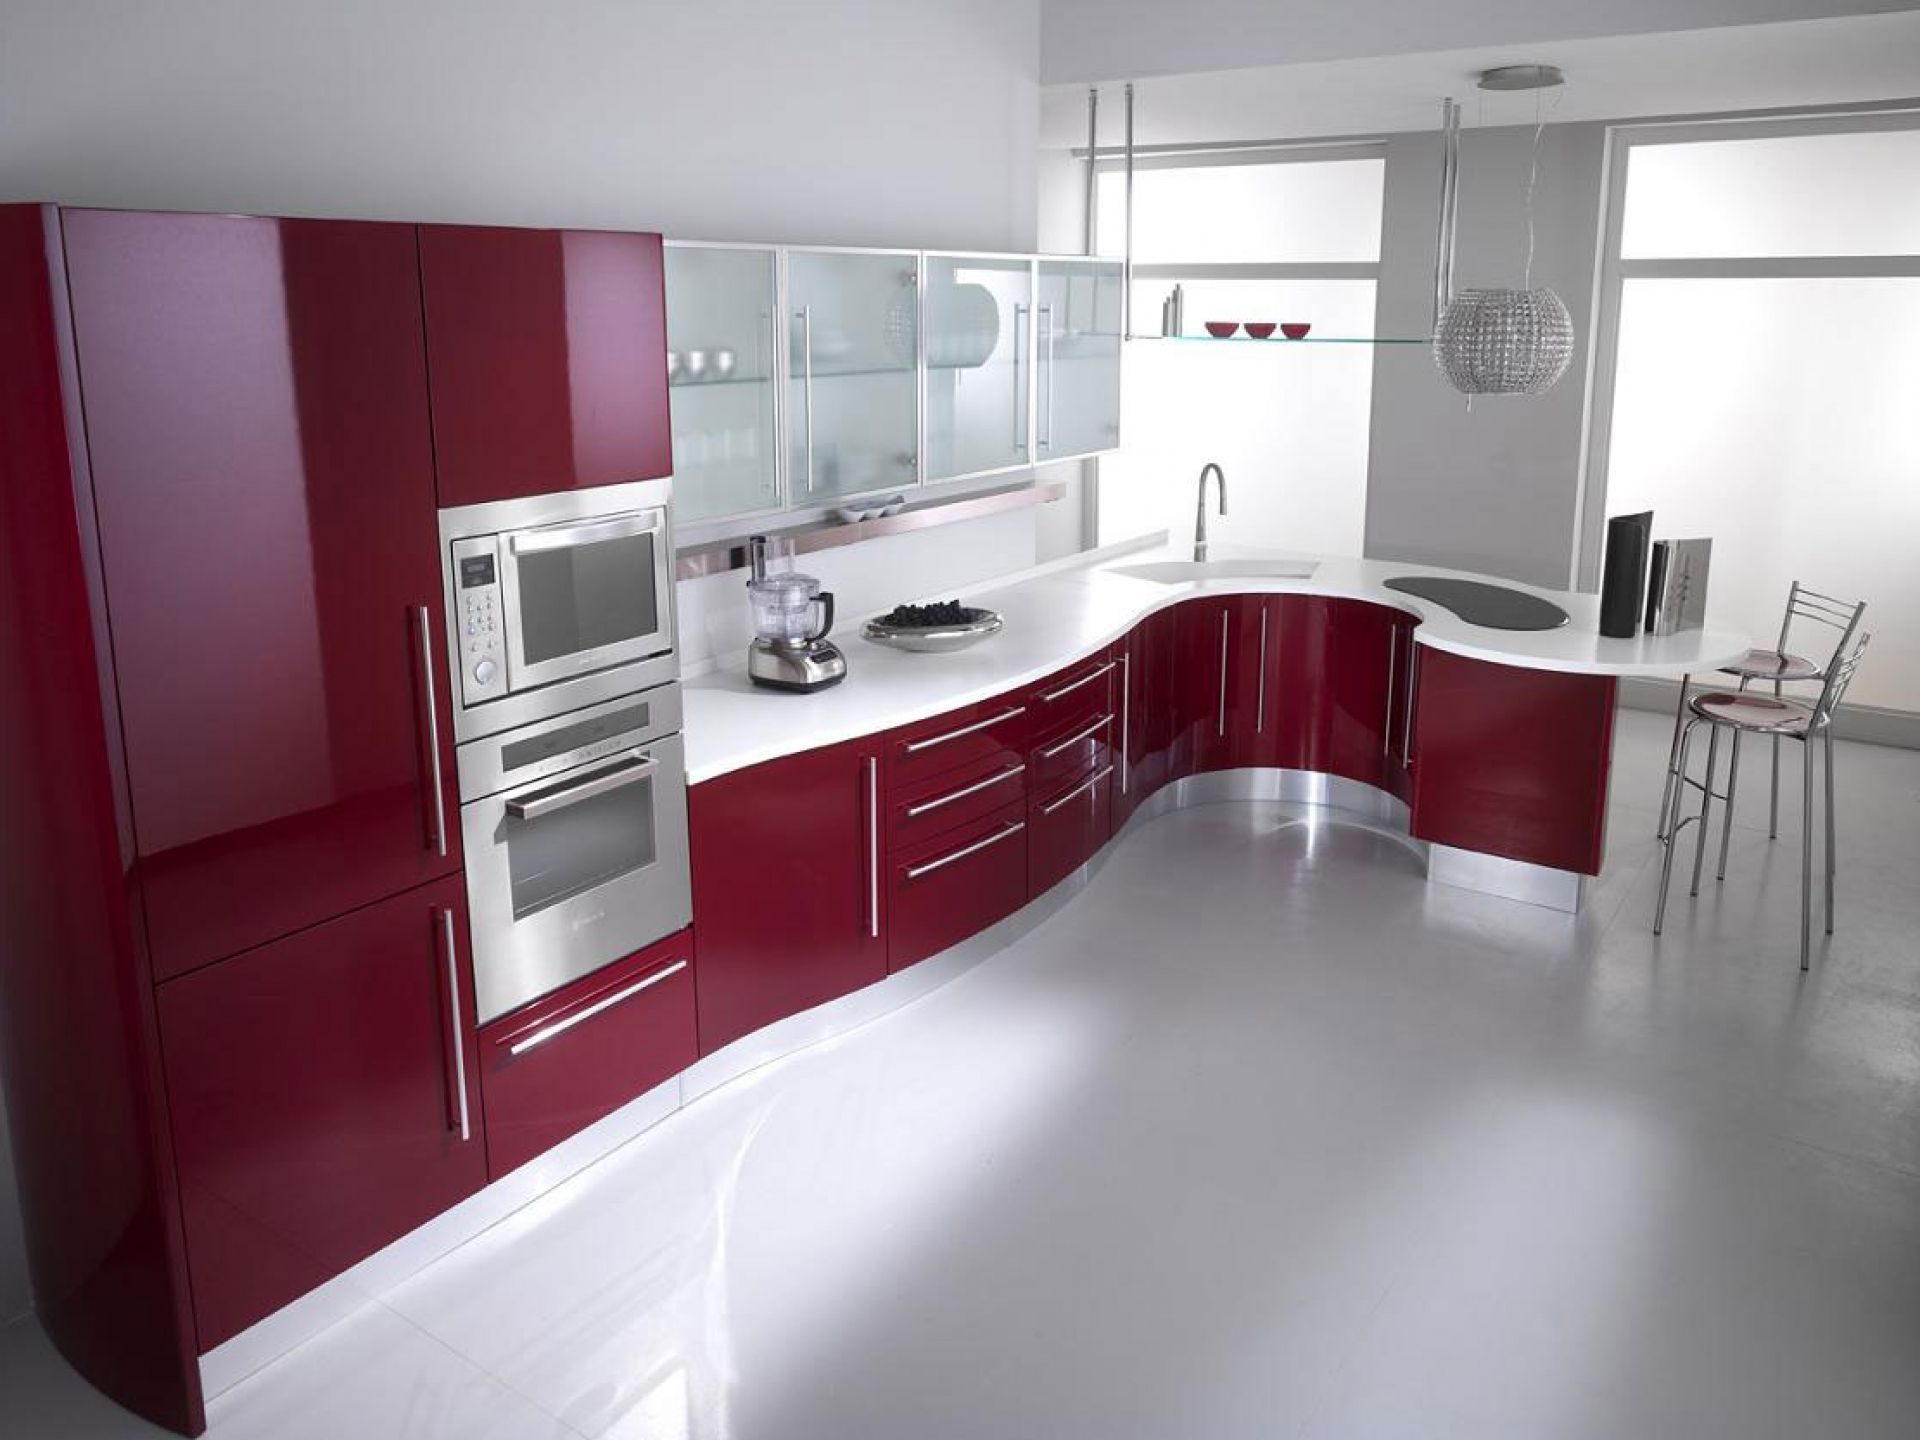 Great Beautiful Kitchen With Maroon Cabinets And Italian Style  Http://www.urbanhomez.